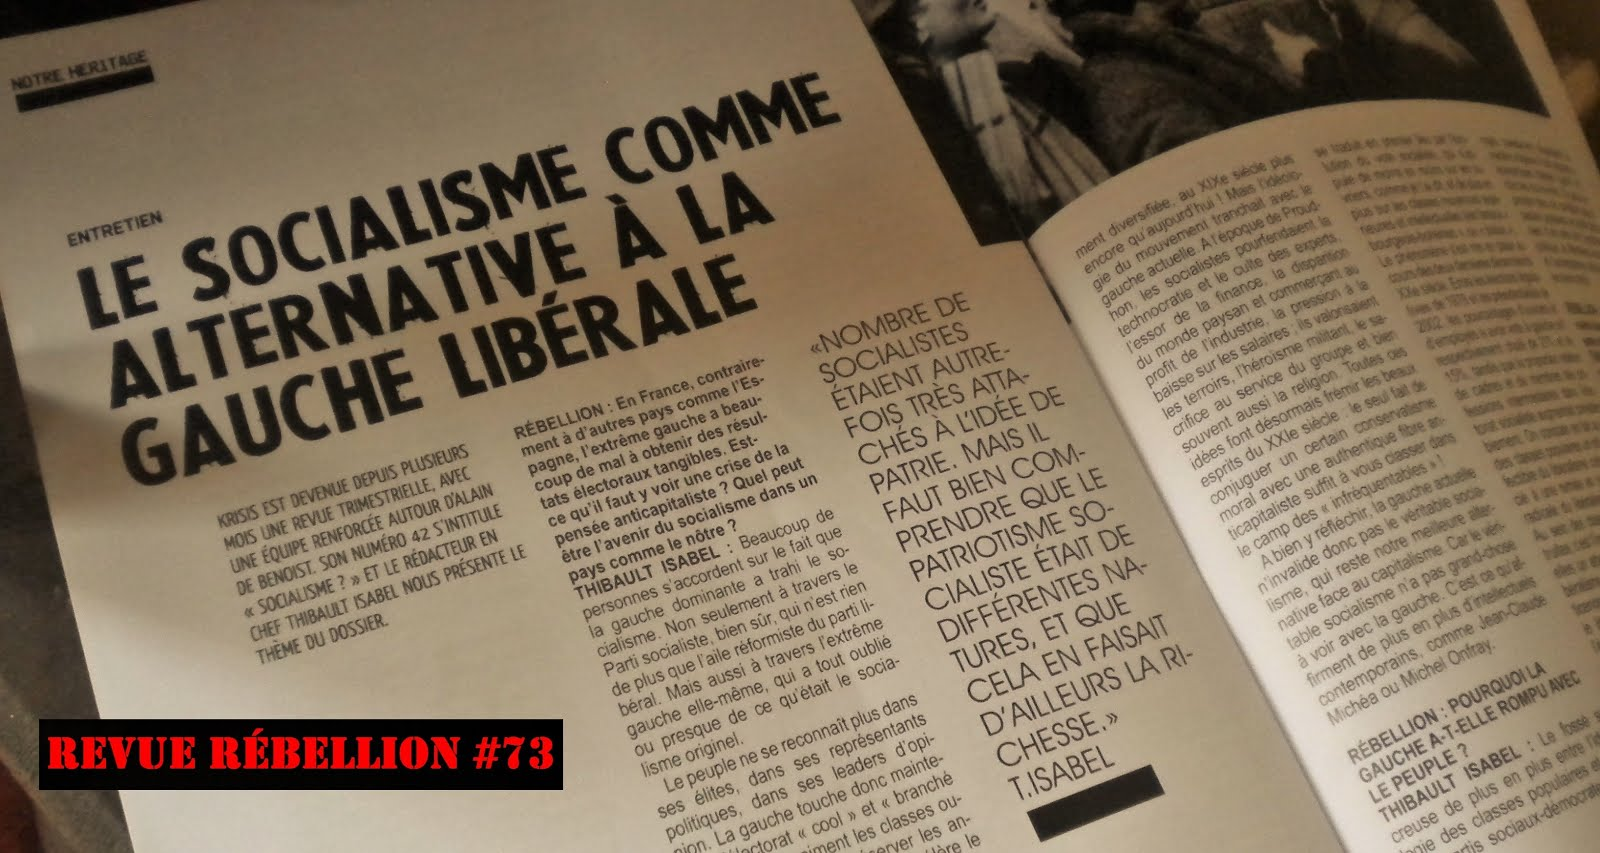 Un article de Thibault Isabel - Rébellion #73